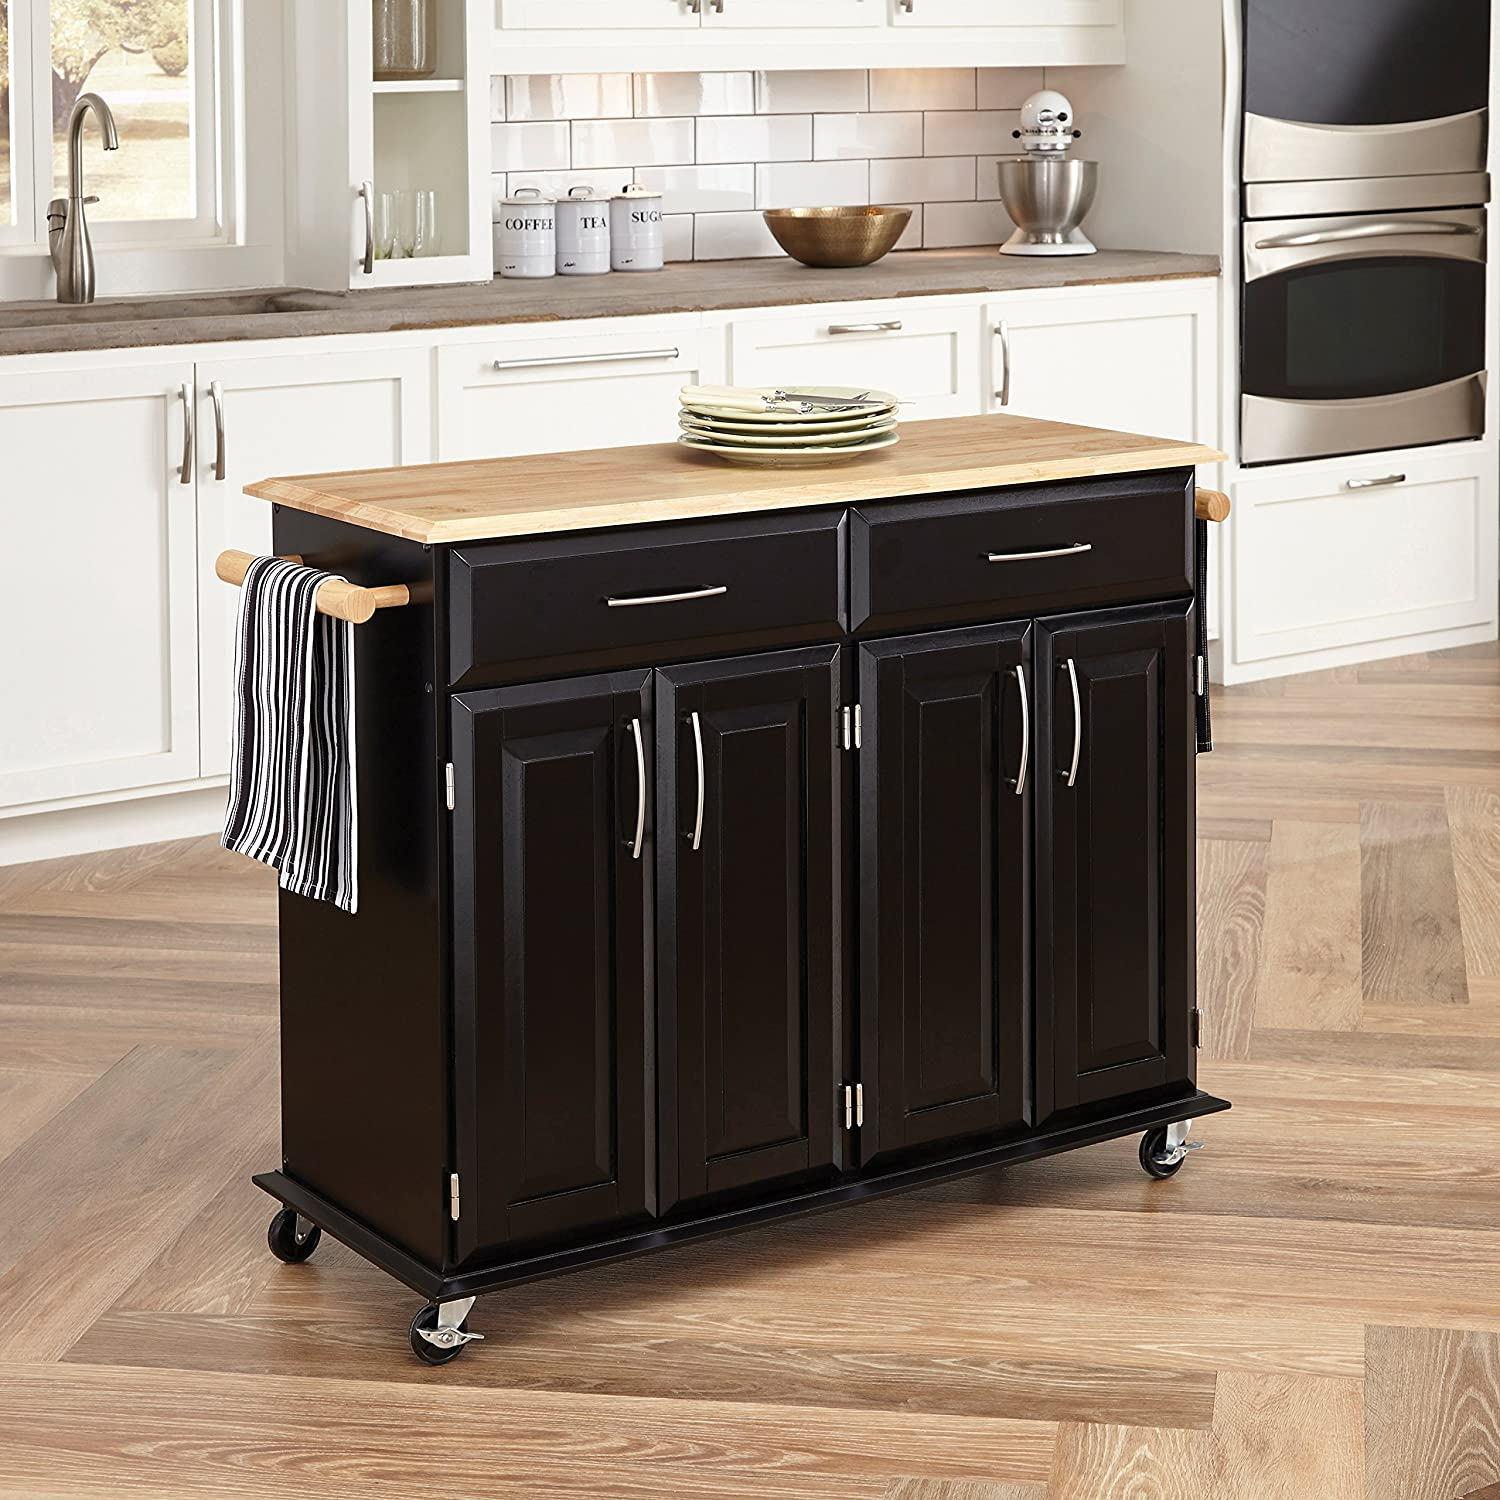 Bon Home Styles 4528 95 Dolly Madison Kitchen Cart, Black Finish